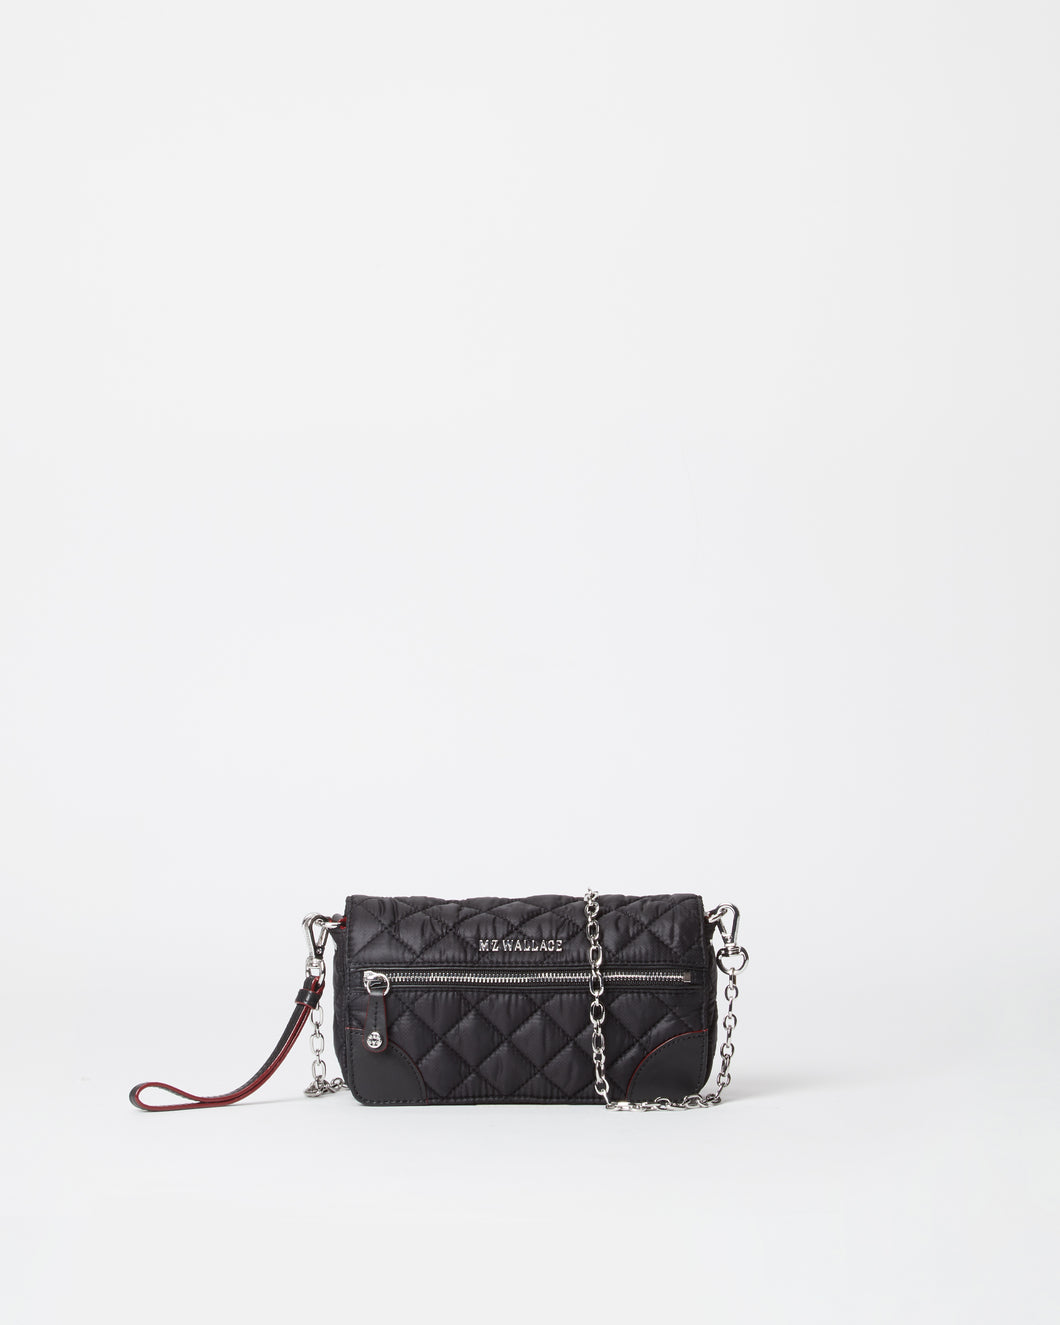 MZ WALLACE CROSBY CONVERTIBLE WRISTLET CLUTCH BAG